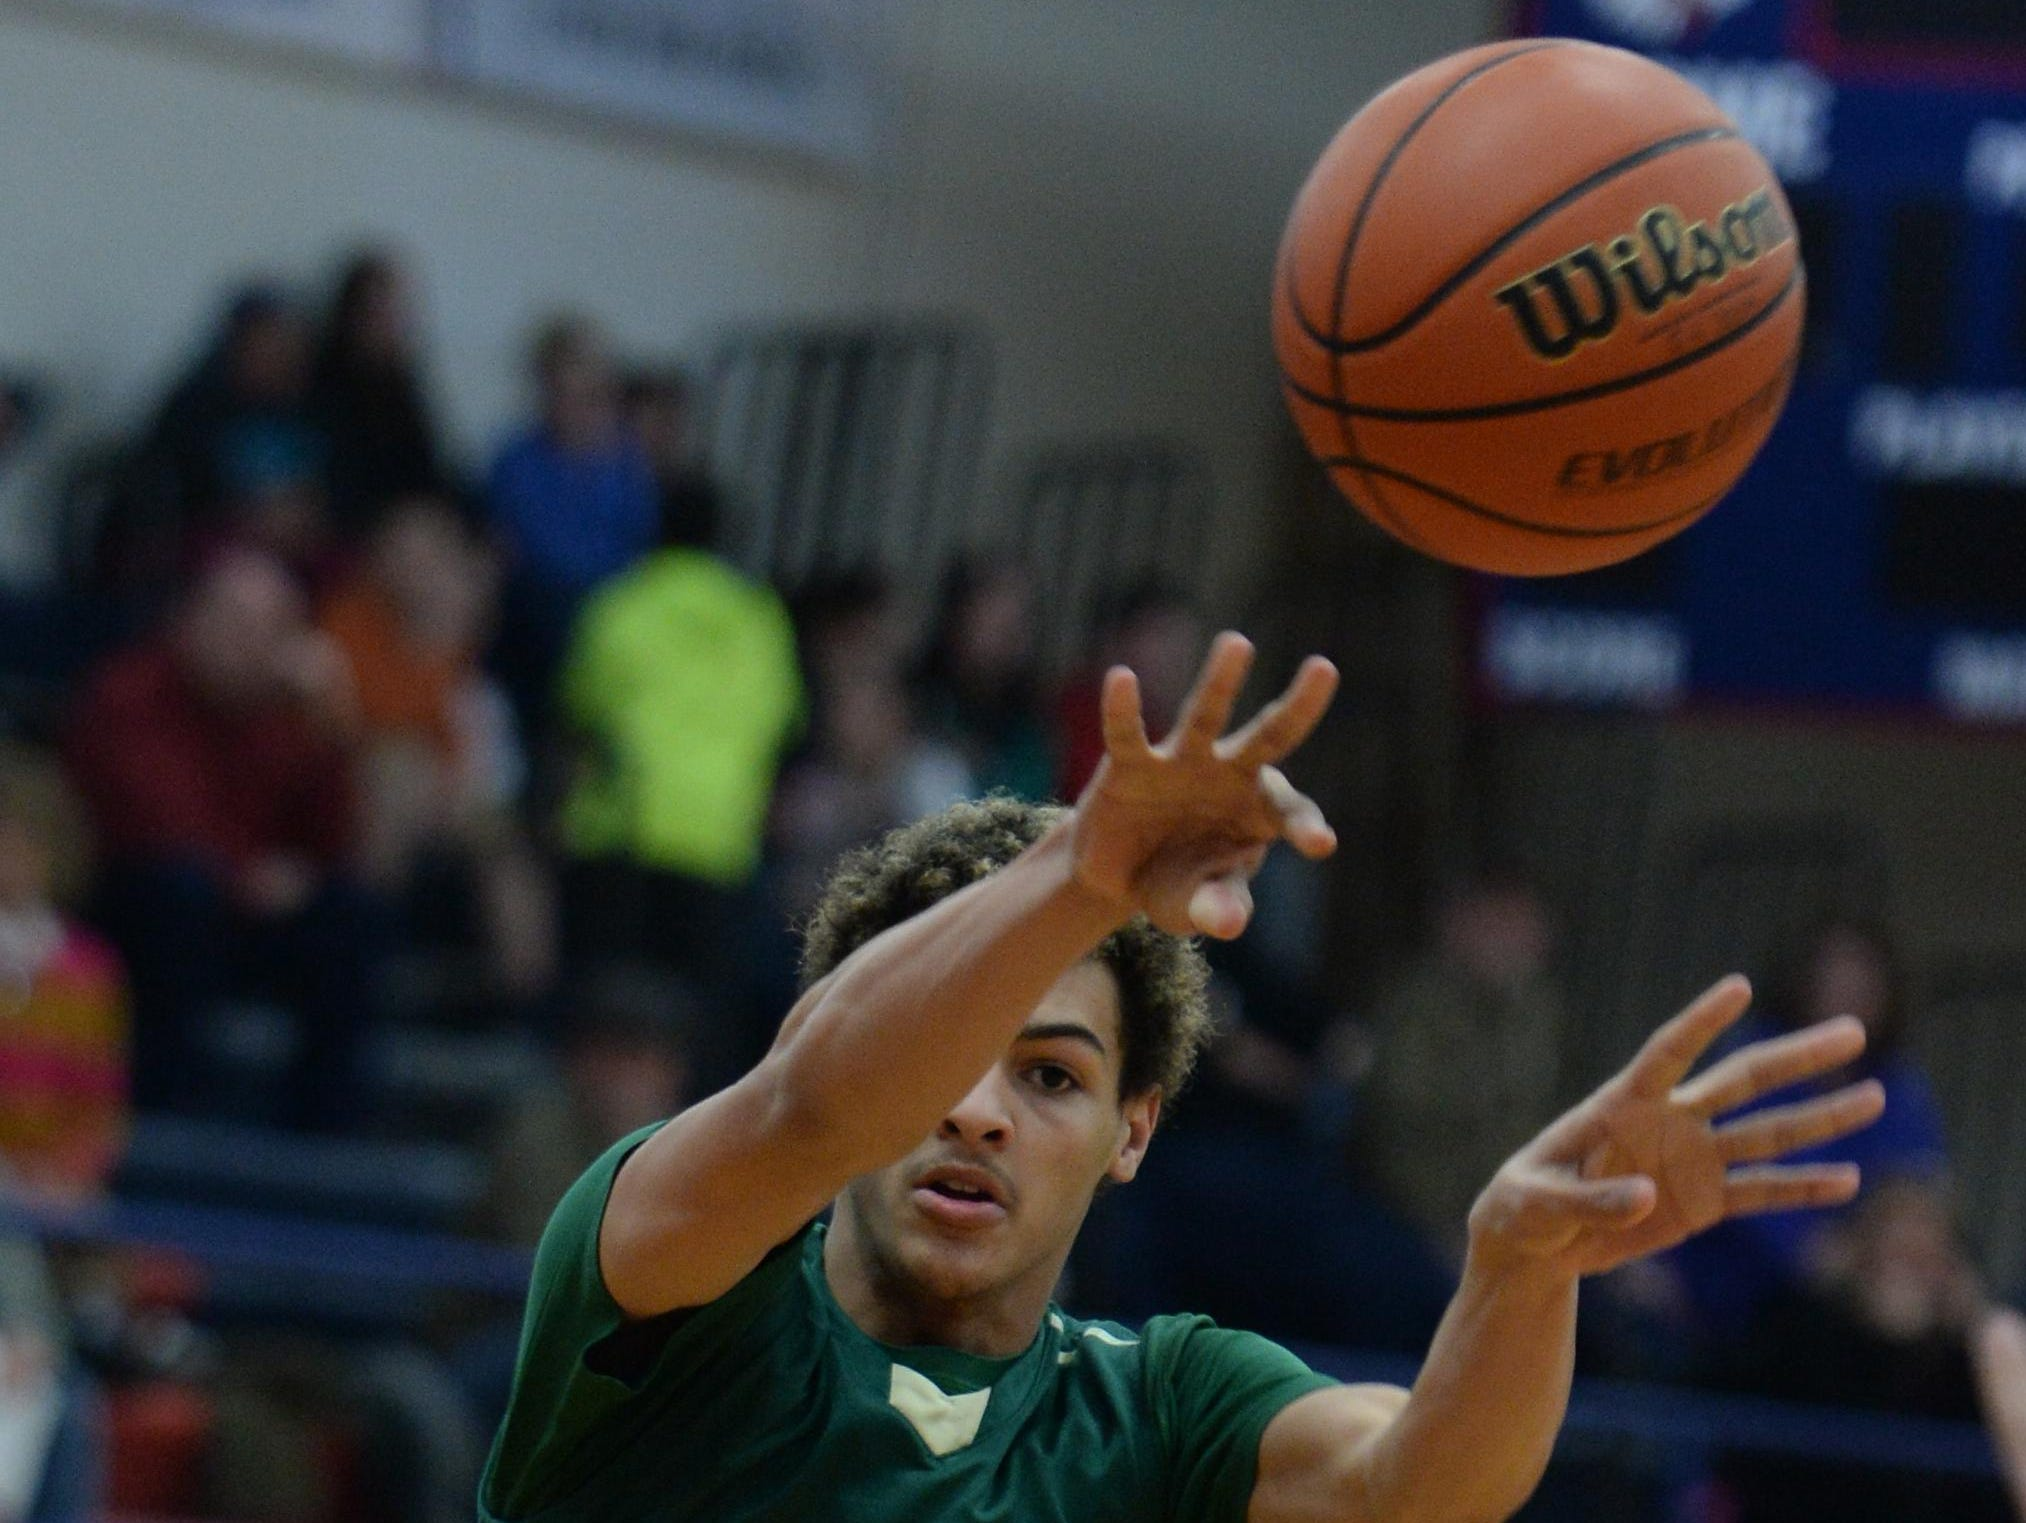 Northeastern's Tyler Smith passes the ball during a game in February. Smith picked up an offer from IUPUI on Tuesday.